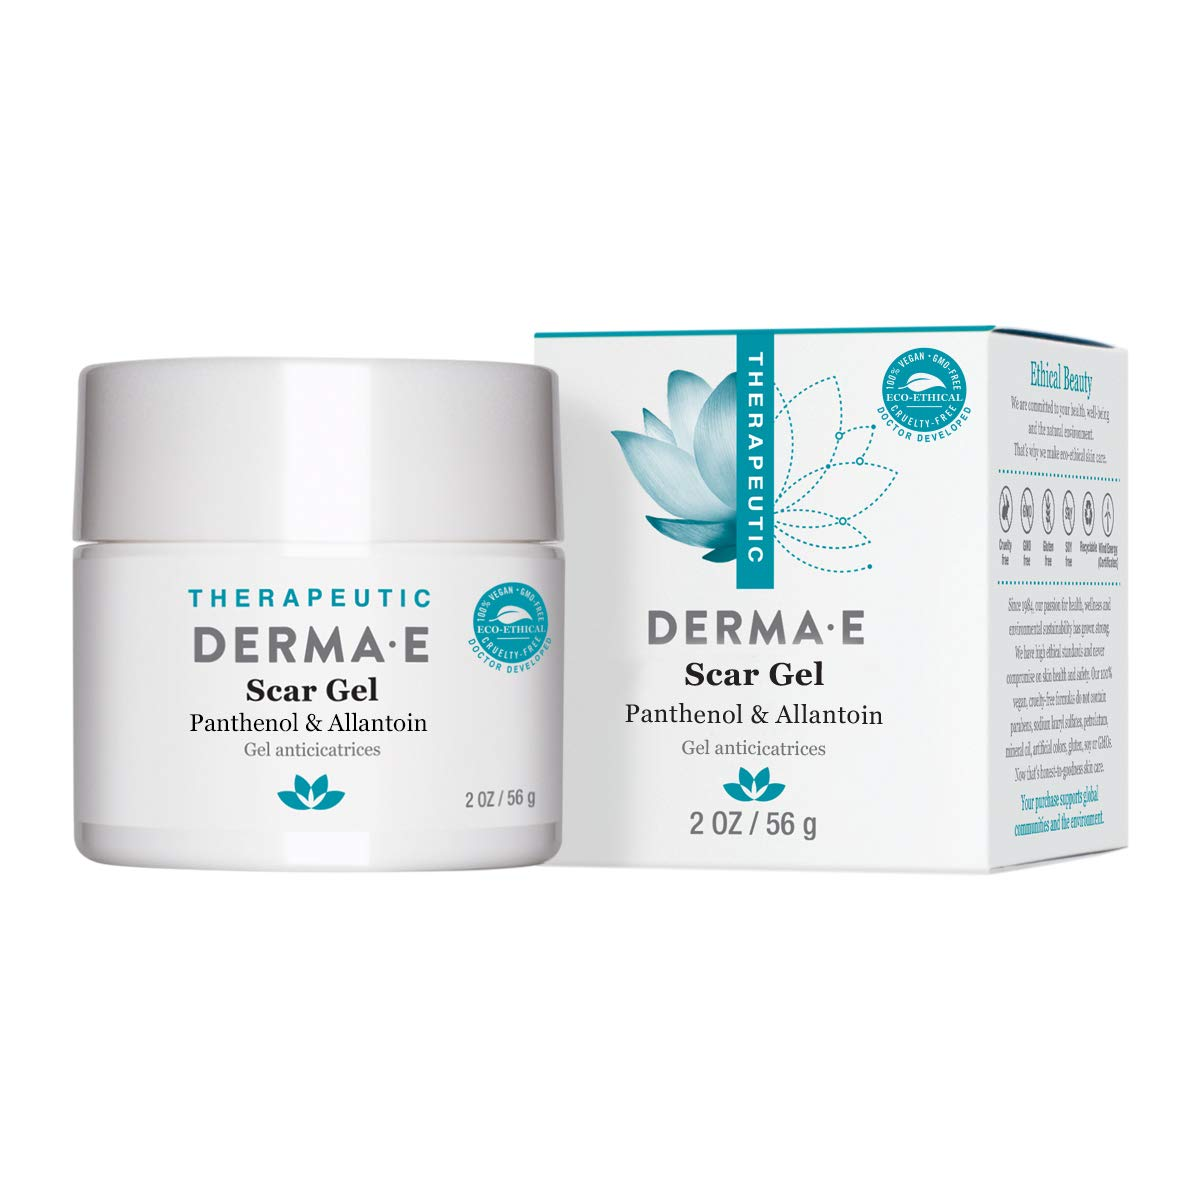 DERMA E Scar Gel, Helps Scarred Skin Heal, 2 oz by DERMA-E